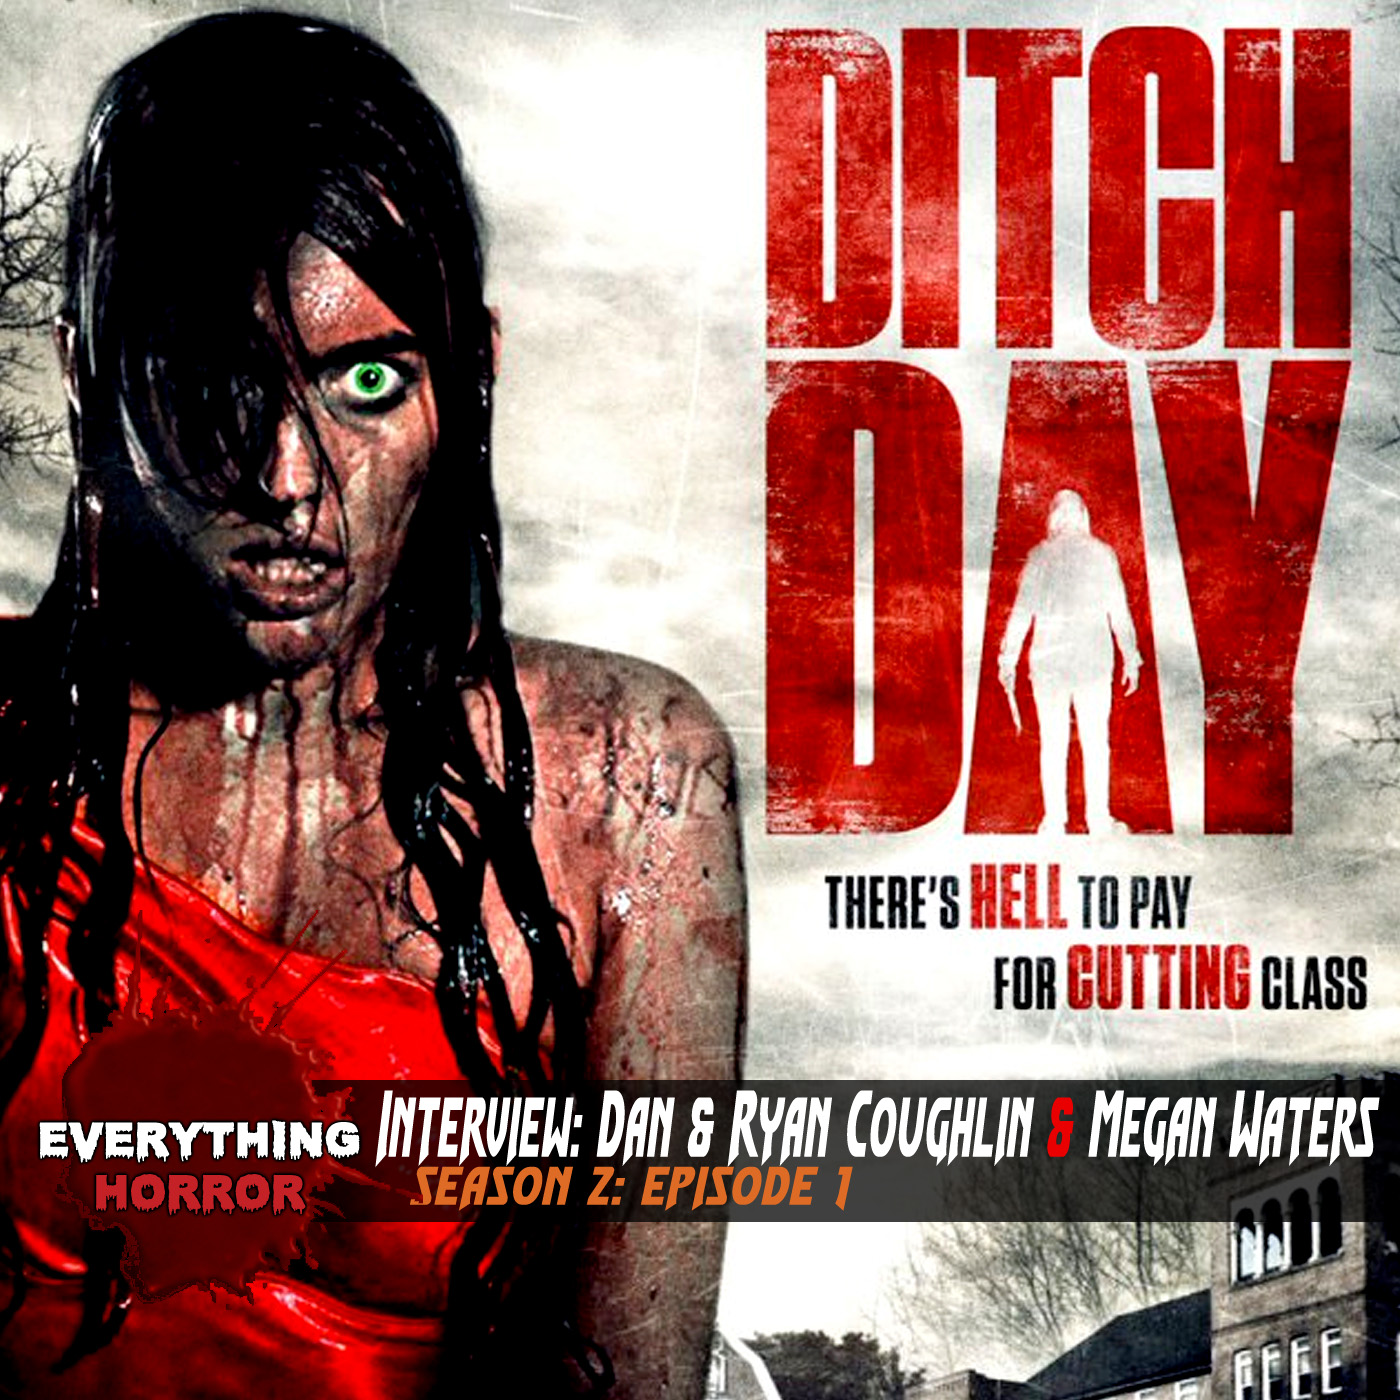 S2: Ep 1. Interview: Dan Coughlin, Ryan Coughlin (Writers) & Megan Waters (Producer) of Ditch Day Massacre